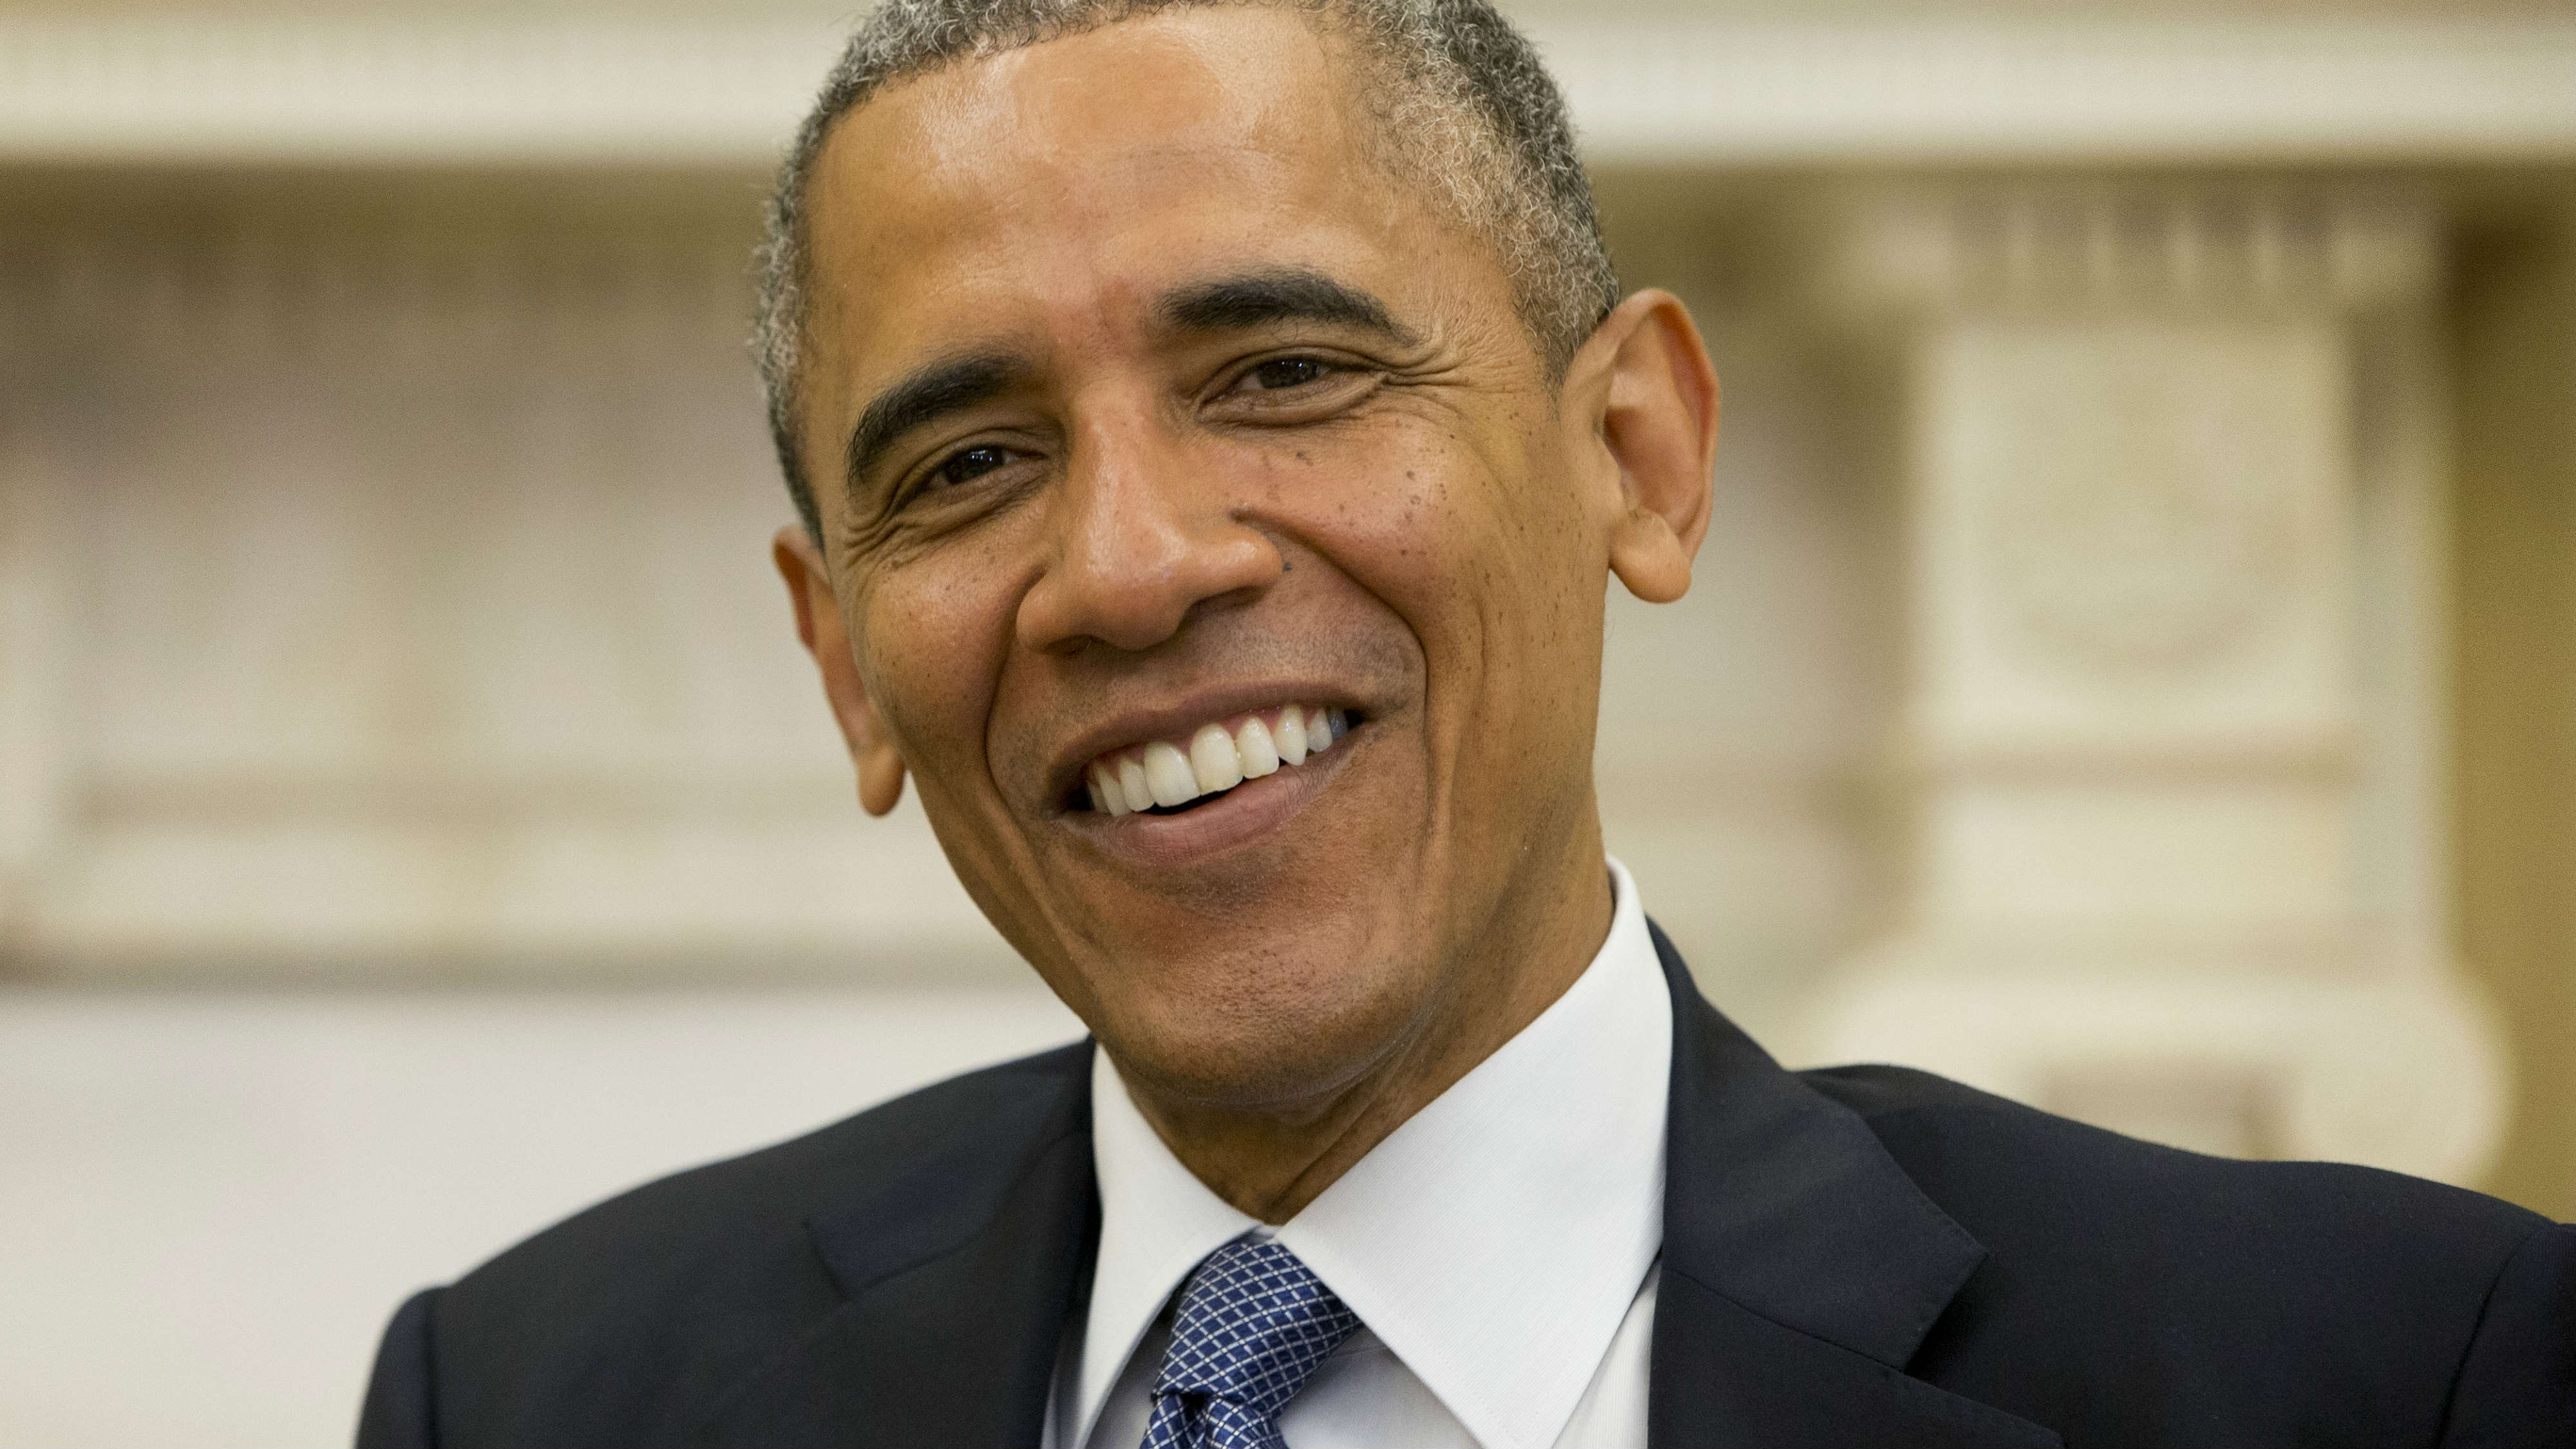 """<p>President Barack Obama smiles as he meets with NATO Secretary General Anders Fogh Rasmussen during their meeting in the Oval Office on July 8, 2014. The presidentbegins a three-day trip Tuesday to Colorado and Texas.</p> <p style=""""line-height: 11.25pt; background-image: initial; background-attachment: initial; background-size: initial; background-origin: initial; background-clip: initial; background-position: initial; background-repeat: initial;""""><span style=""""font-size:8.5pt; font-family:""""Verdana"""",""""sans-serif"""";color:#333333""""><o:p></o:p></span></p>"""